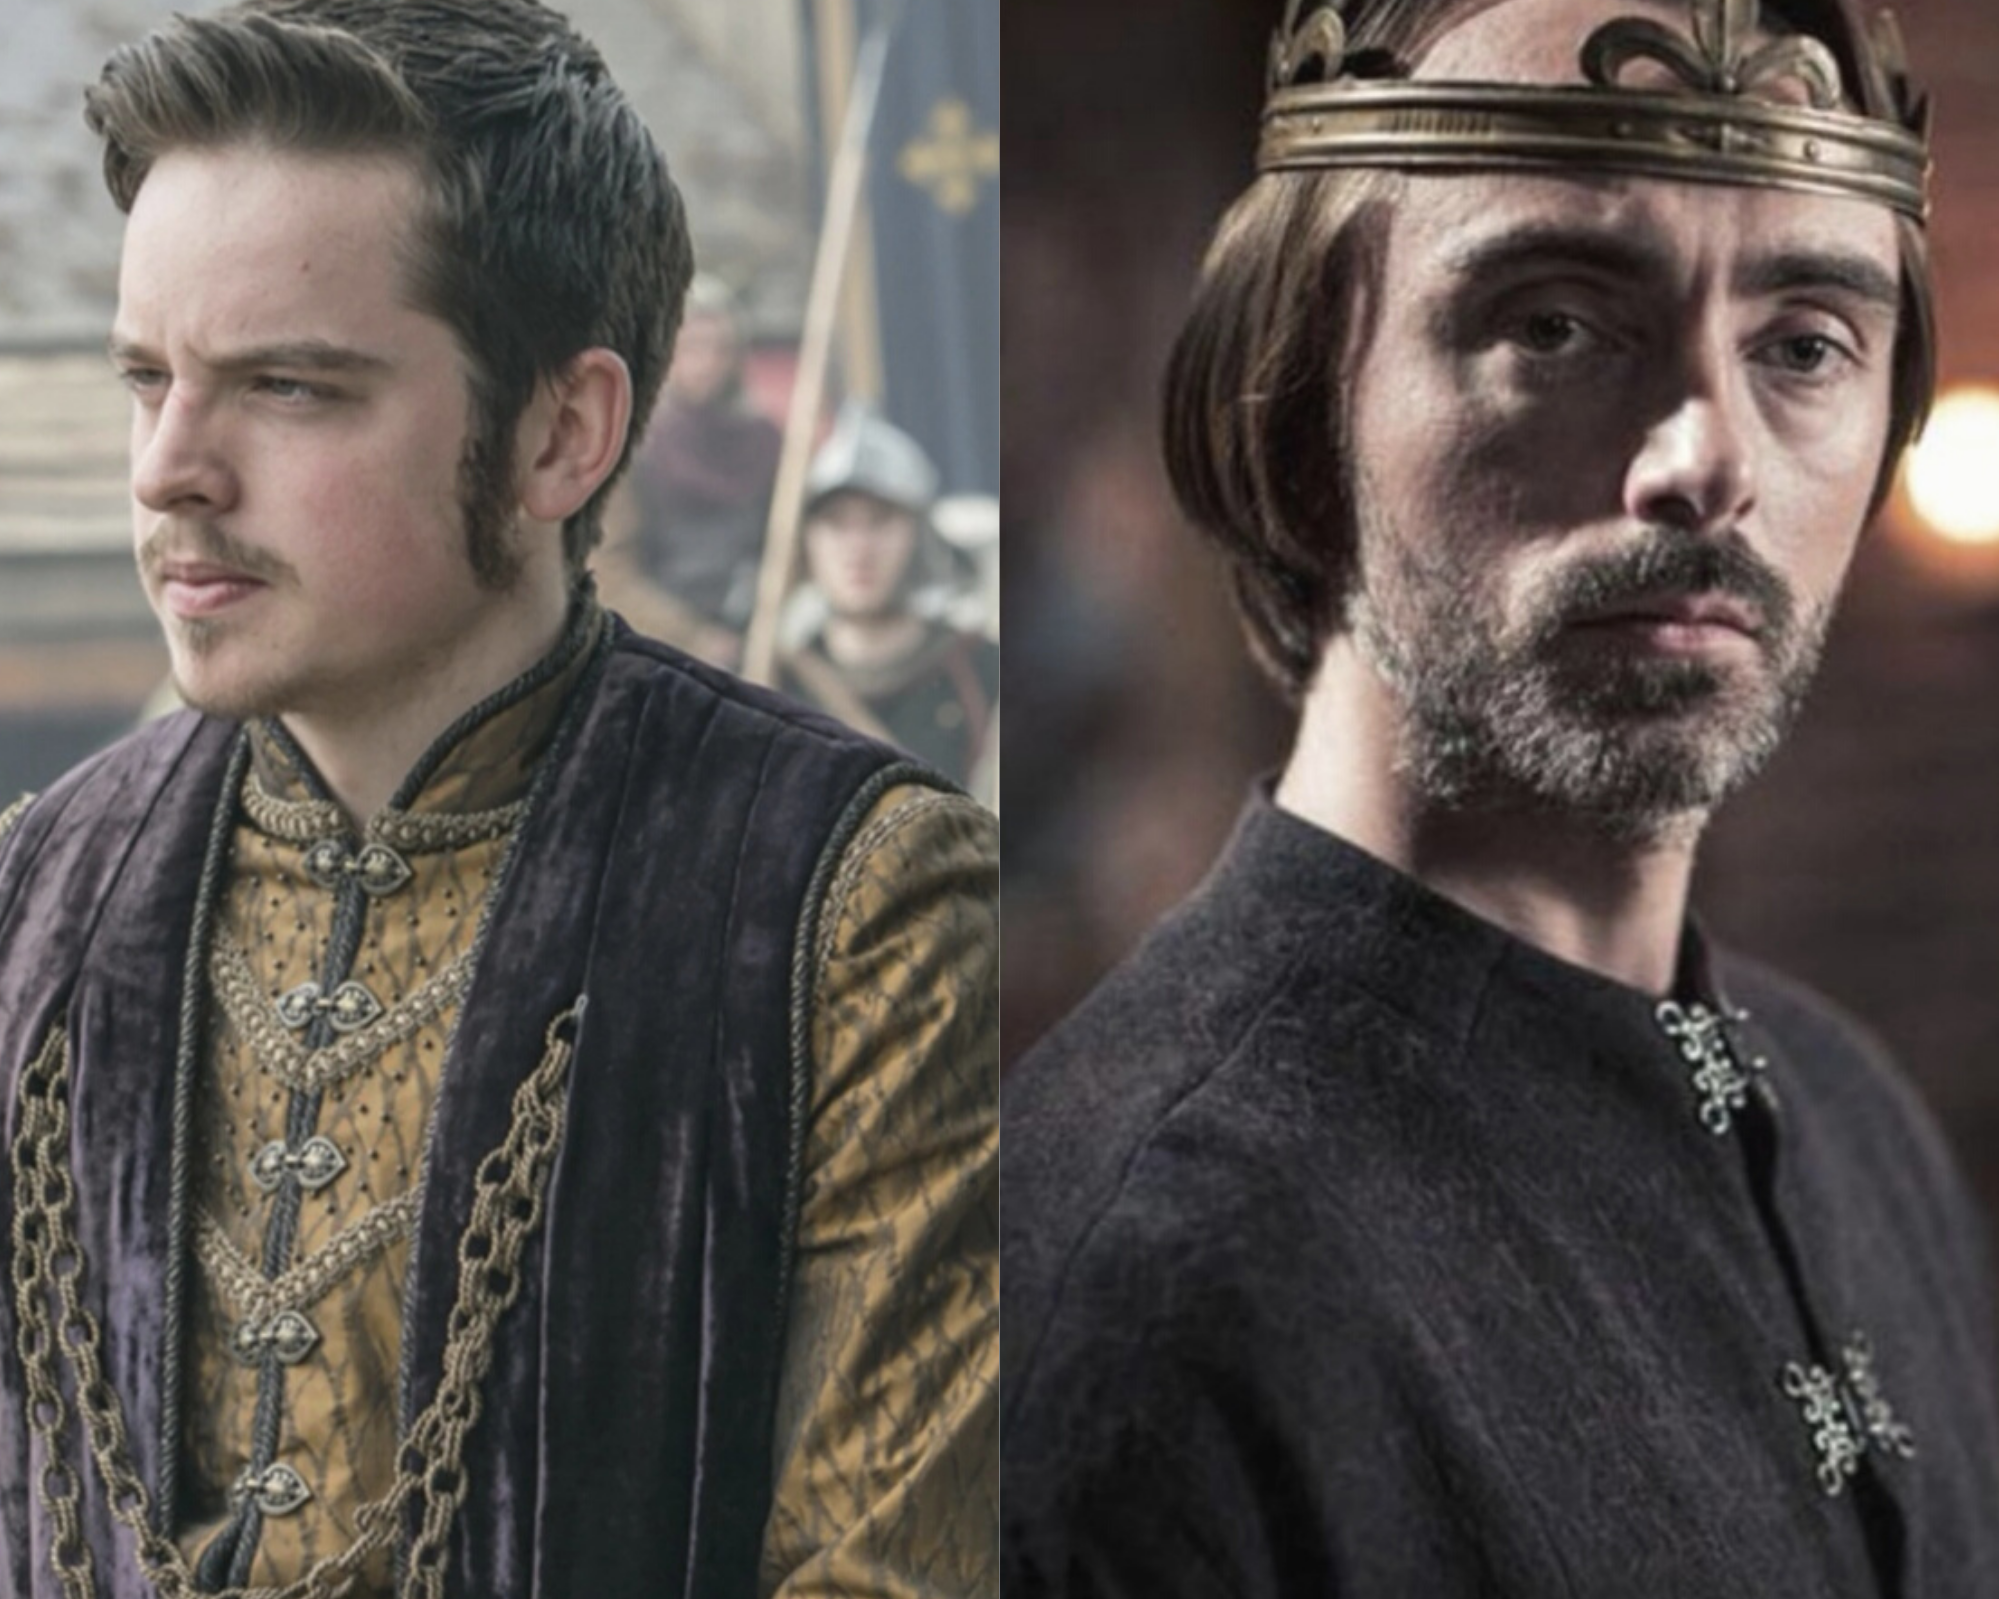 King Alfred comparison between Vikings and The Last Kingdom